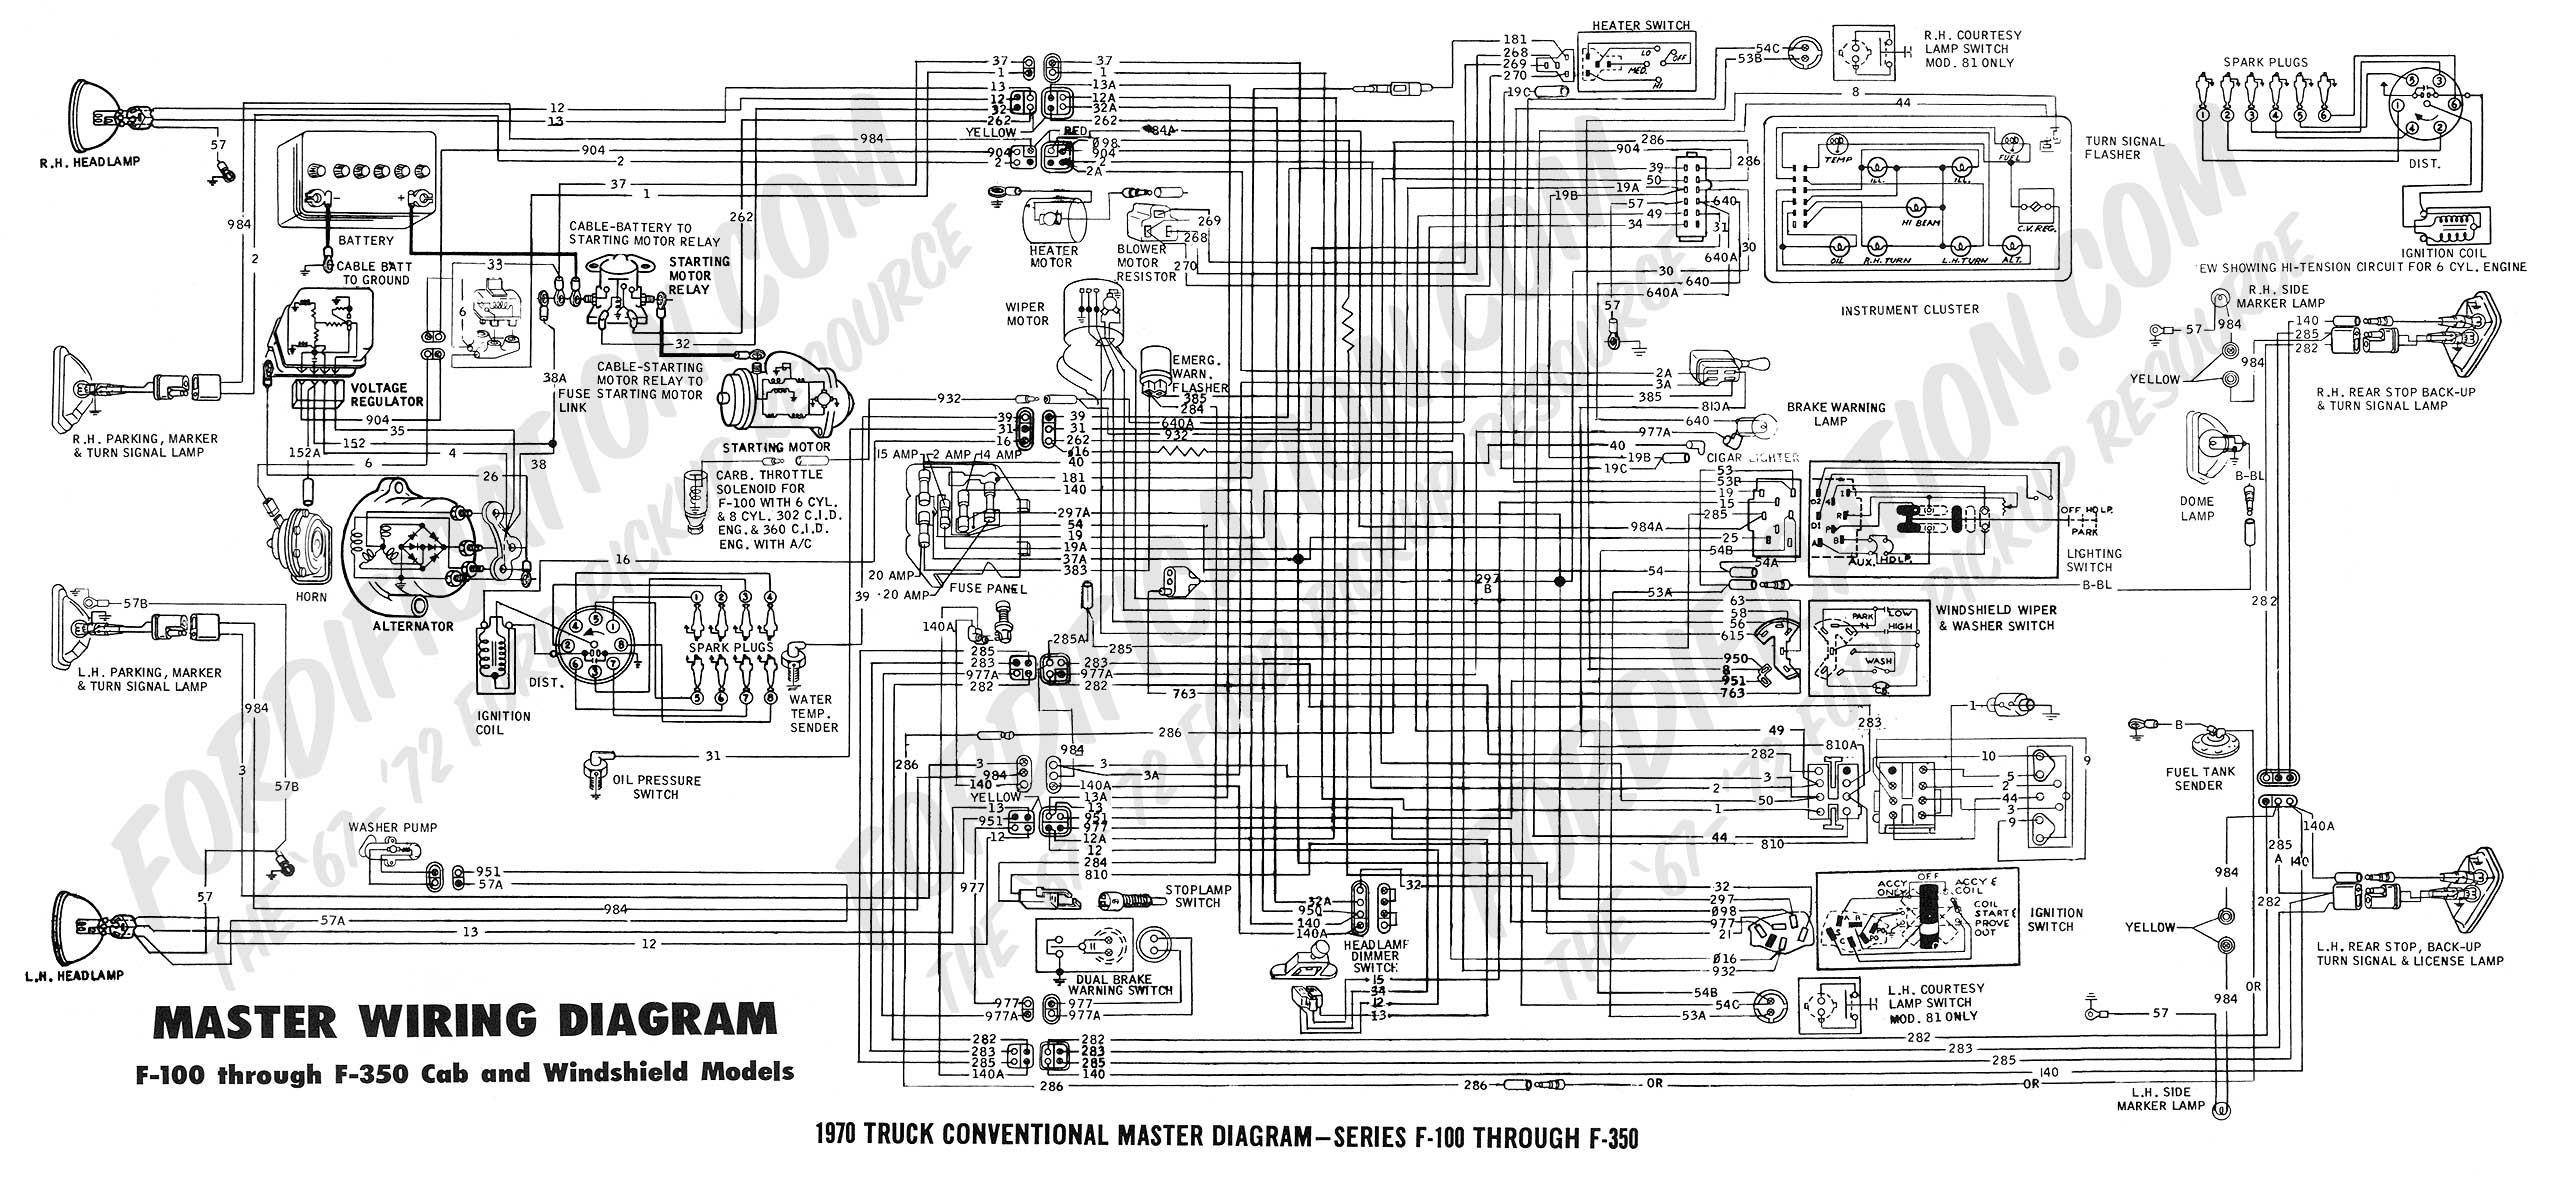 wiring diagram 70_master f450 wiring diagram pto wiring diagram f450 \u2022 wiring diagrams j 2001 ford f150 wiring diagram at bakdesigns.co